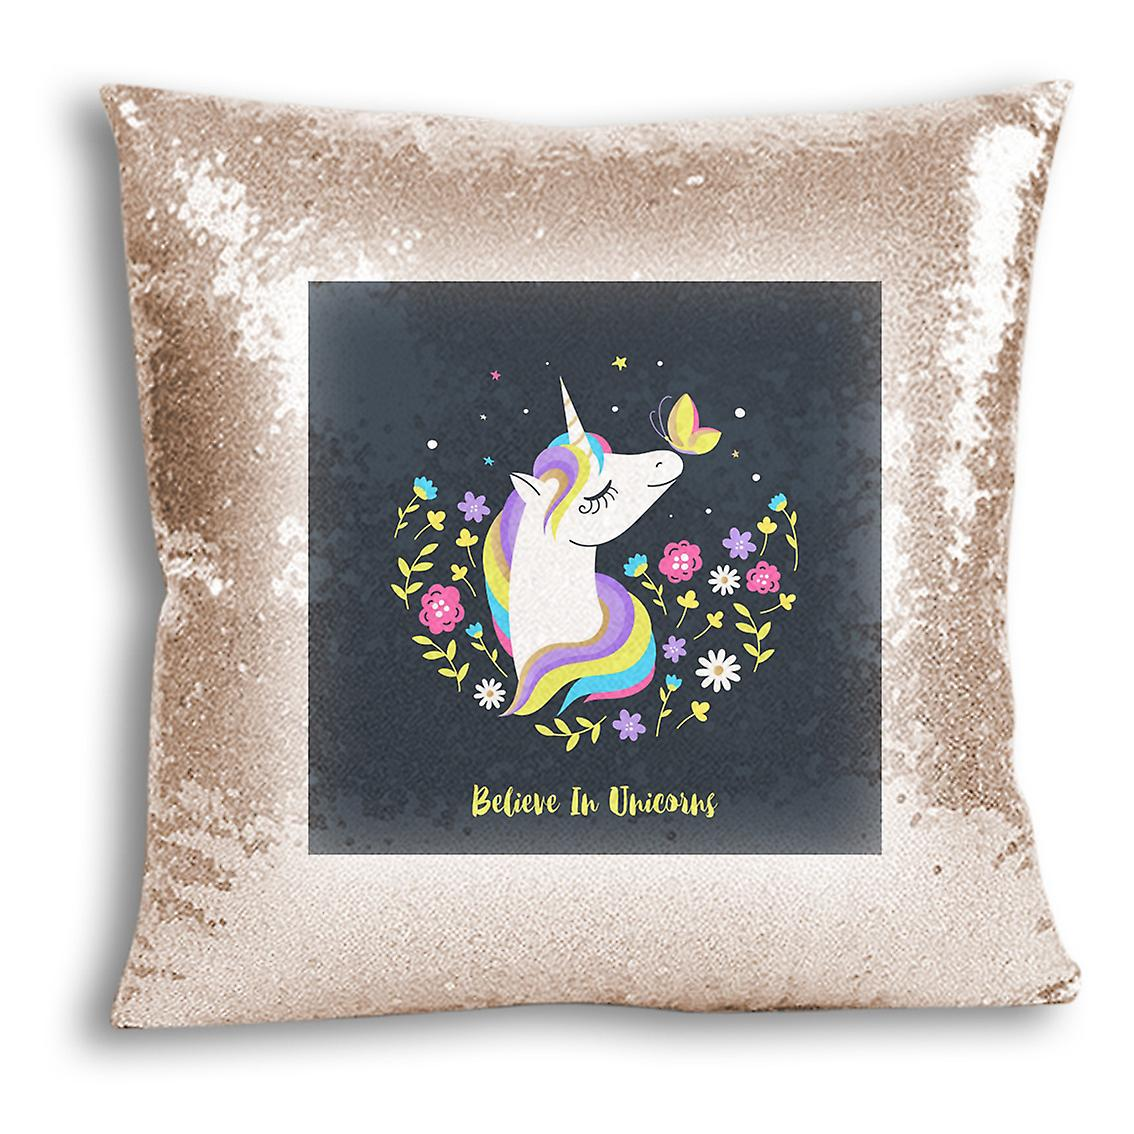 CushionPillow Home Cover With For Sequin Decor I Champagne tronixsUnicorn 14 Design Inserted Printed oCBWderx